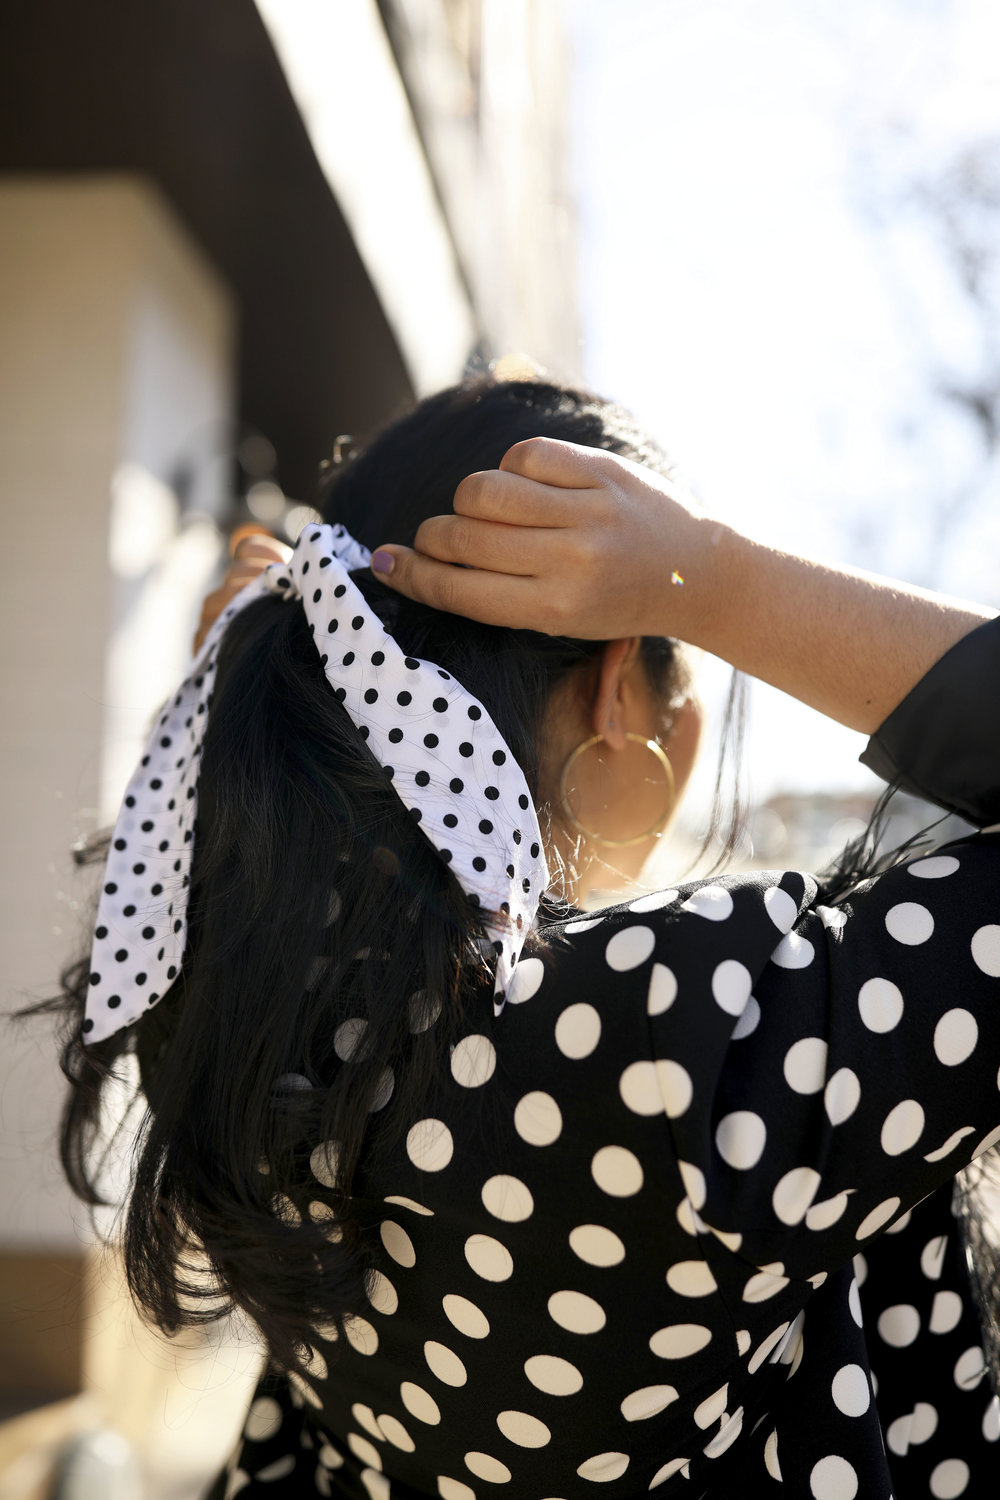 Black and White Polka Dot Outfit Parisian Style_ 8.jpg